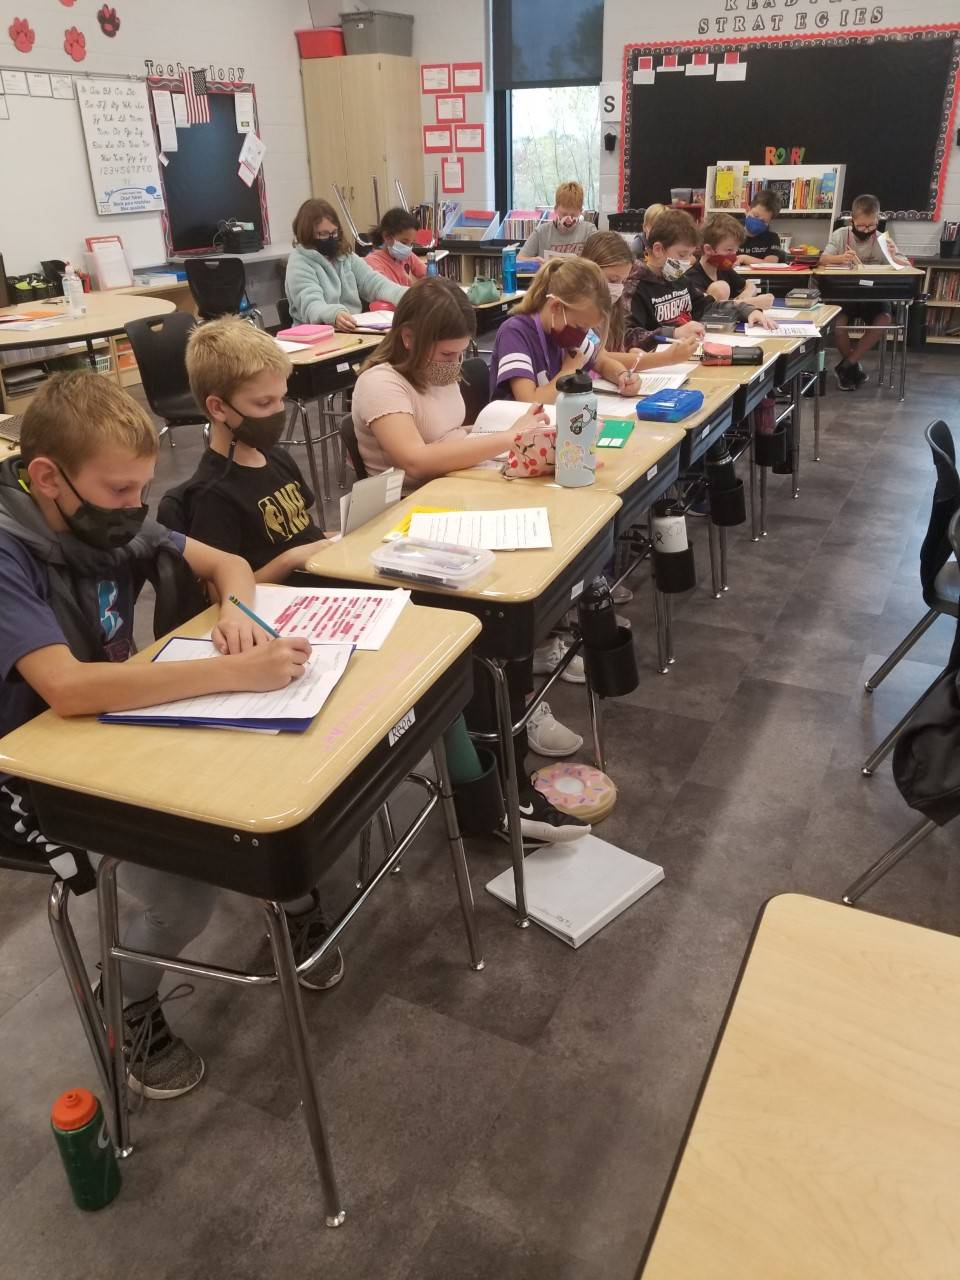 5th grade students writing in science notebooks at desks